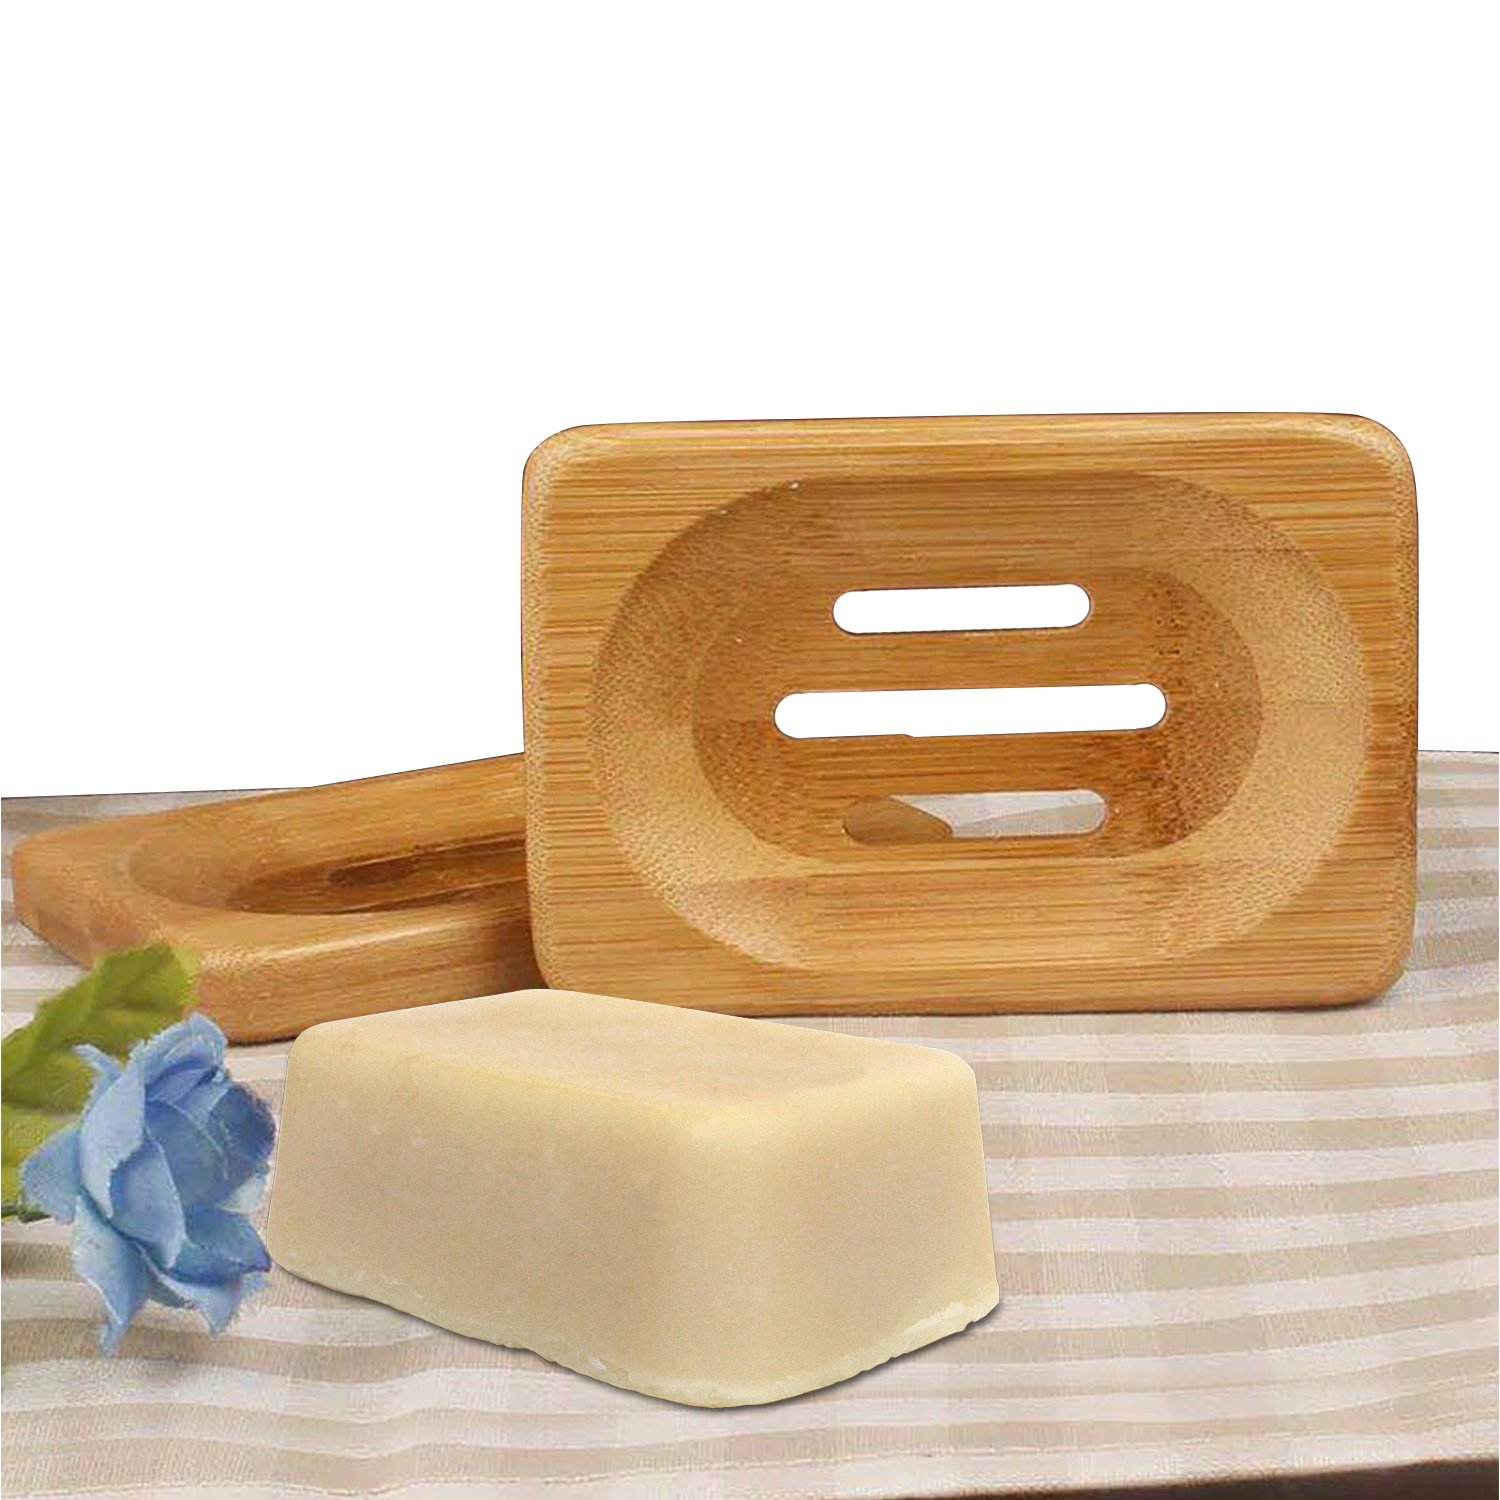 Brand New 2Pcs Natural Wooden Bamboo Bathroom Shower Soap Dish Storage Holder Plate Tray New The Best Kingdom